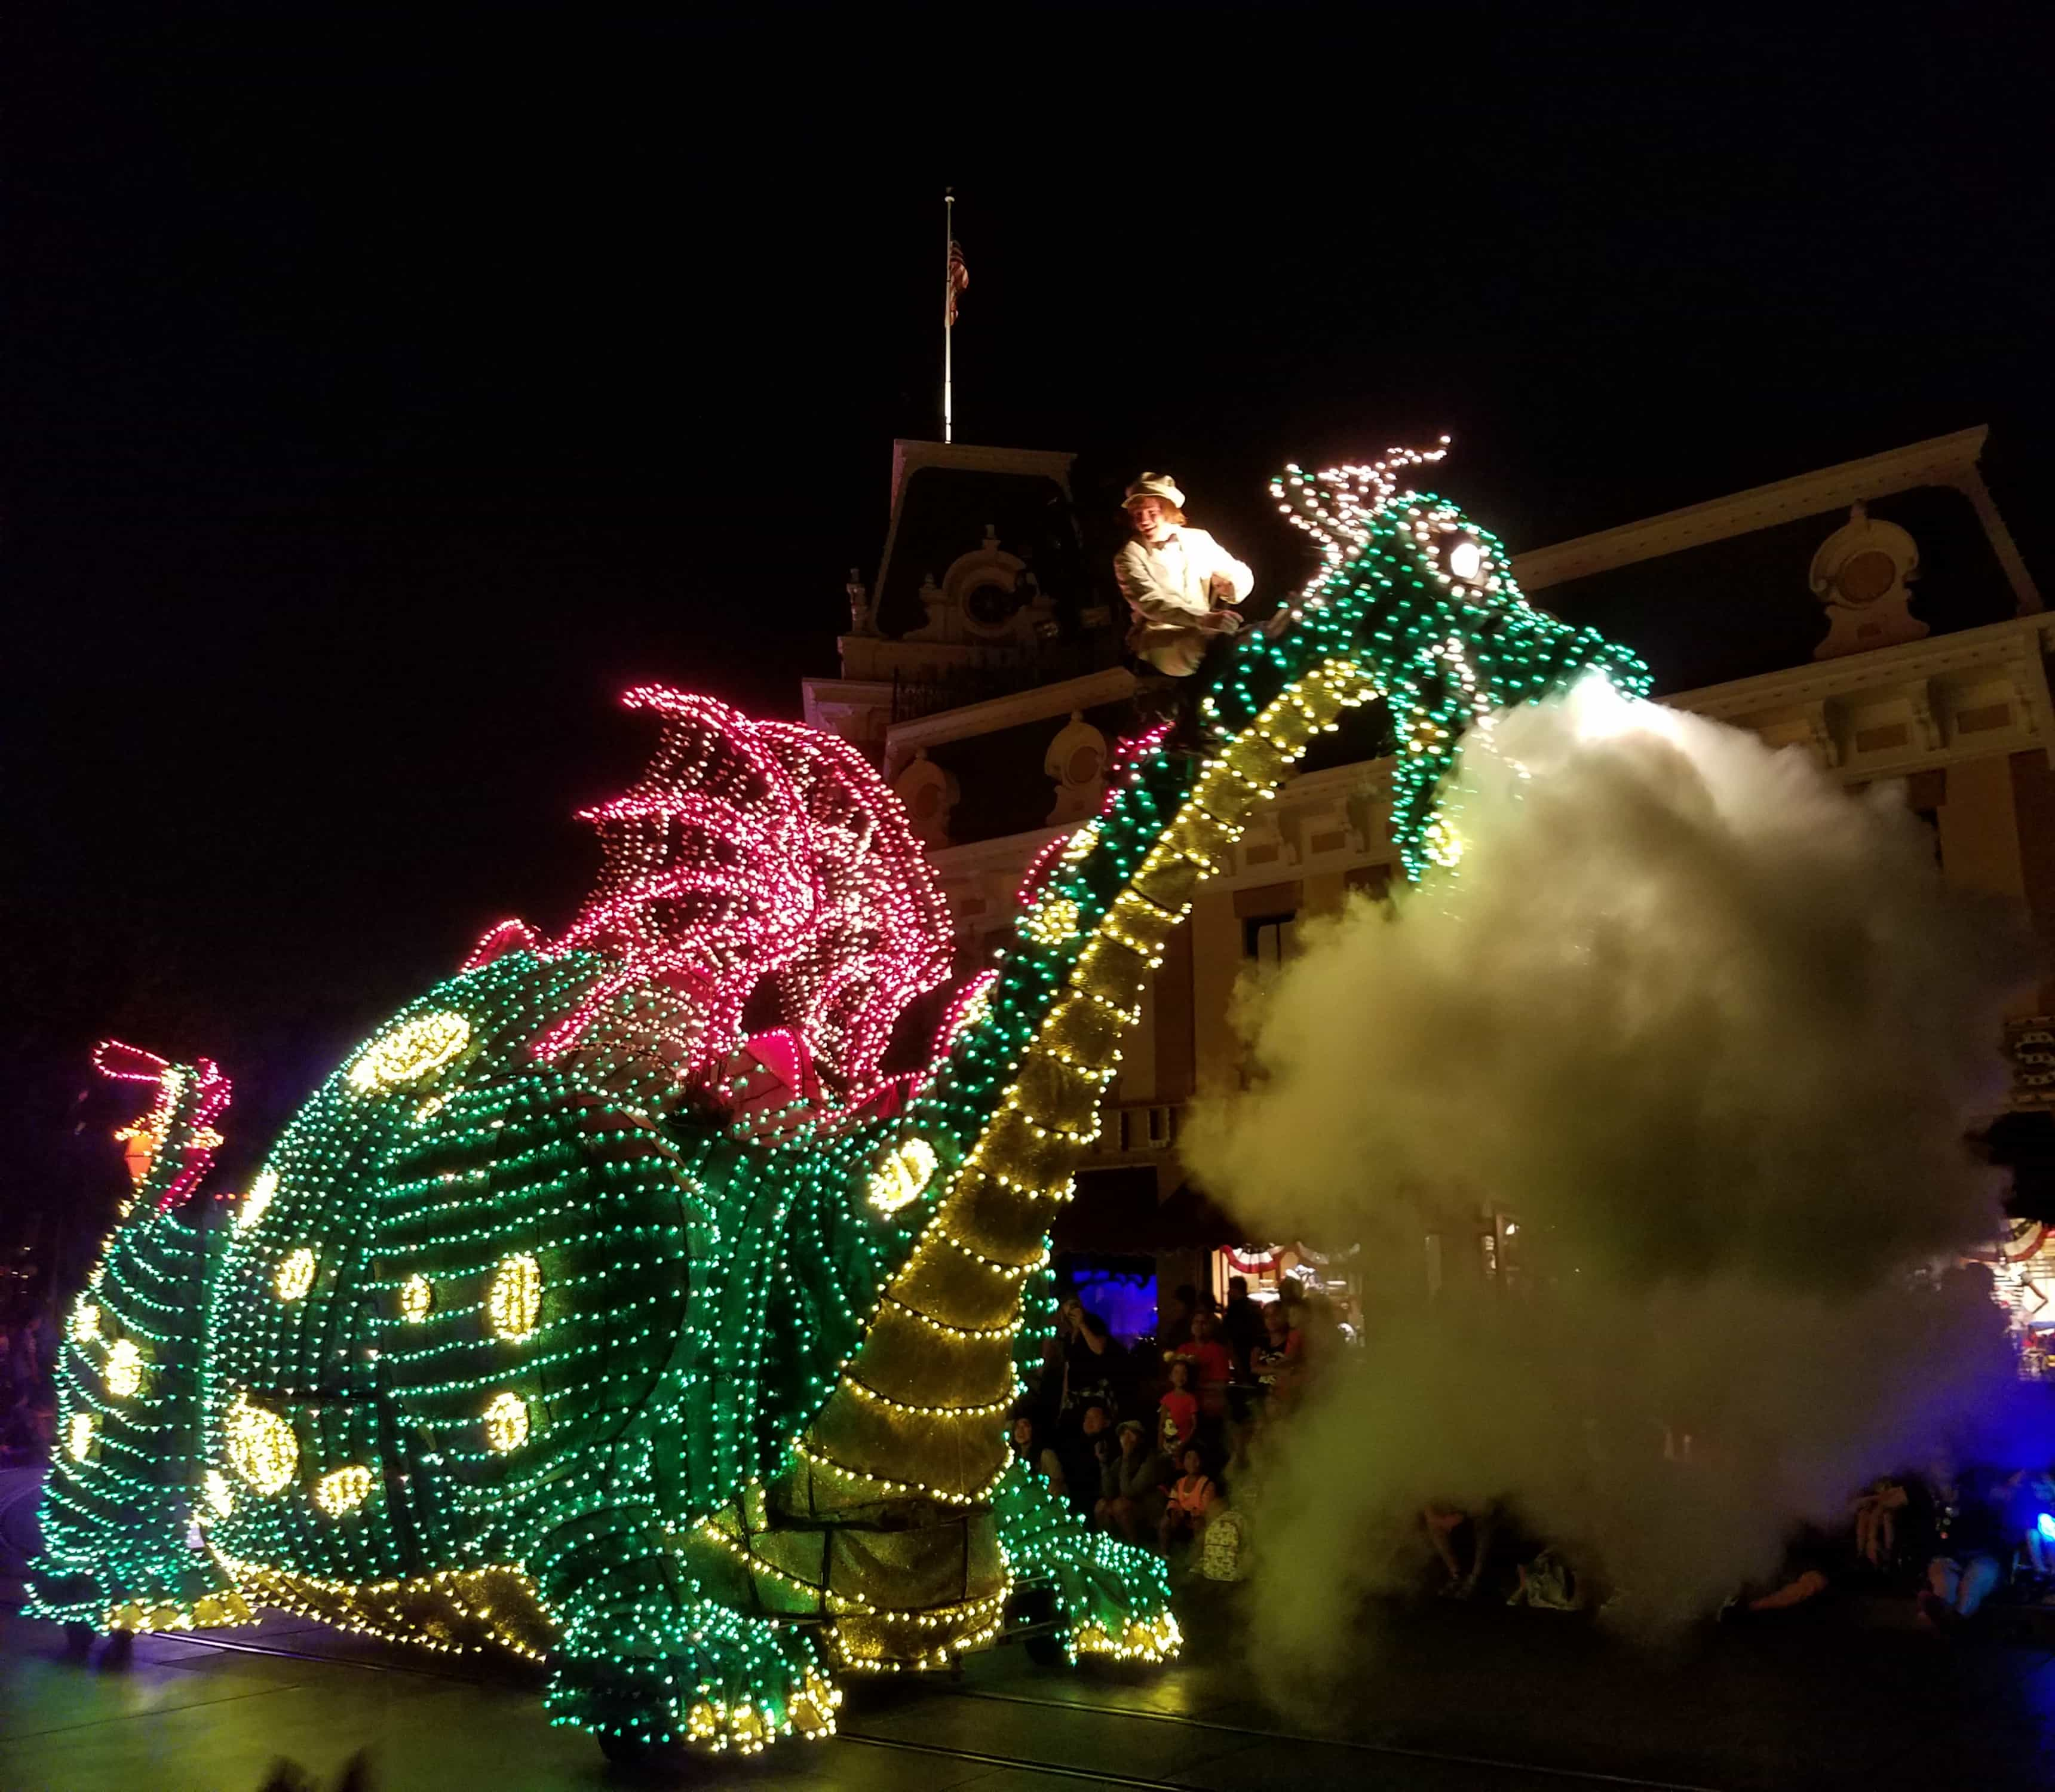 While at D23 Expo - Disneyland and Disney California Adventure - Summer of Heroes - Dragon in Parade